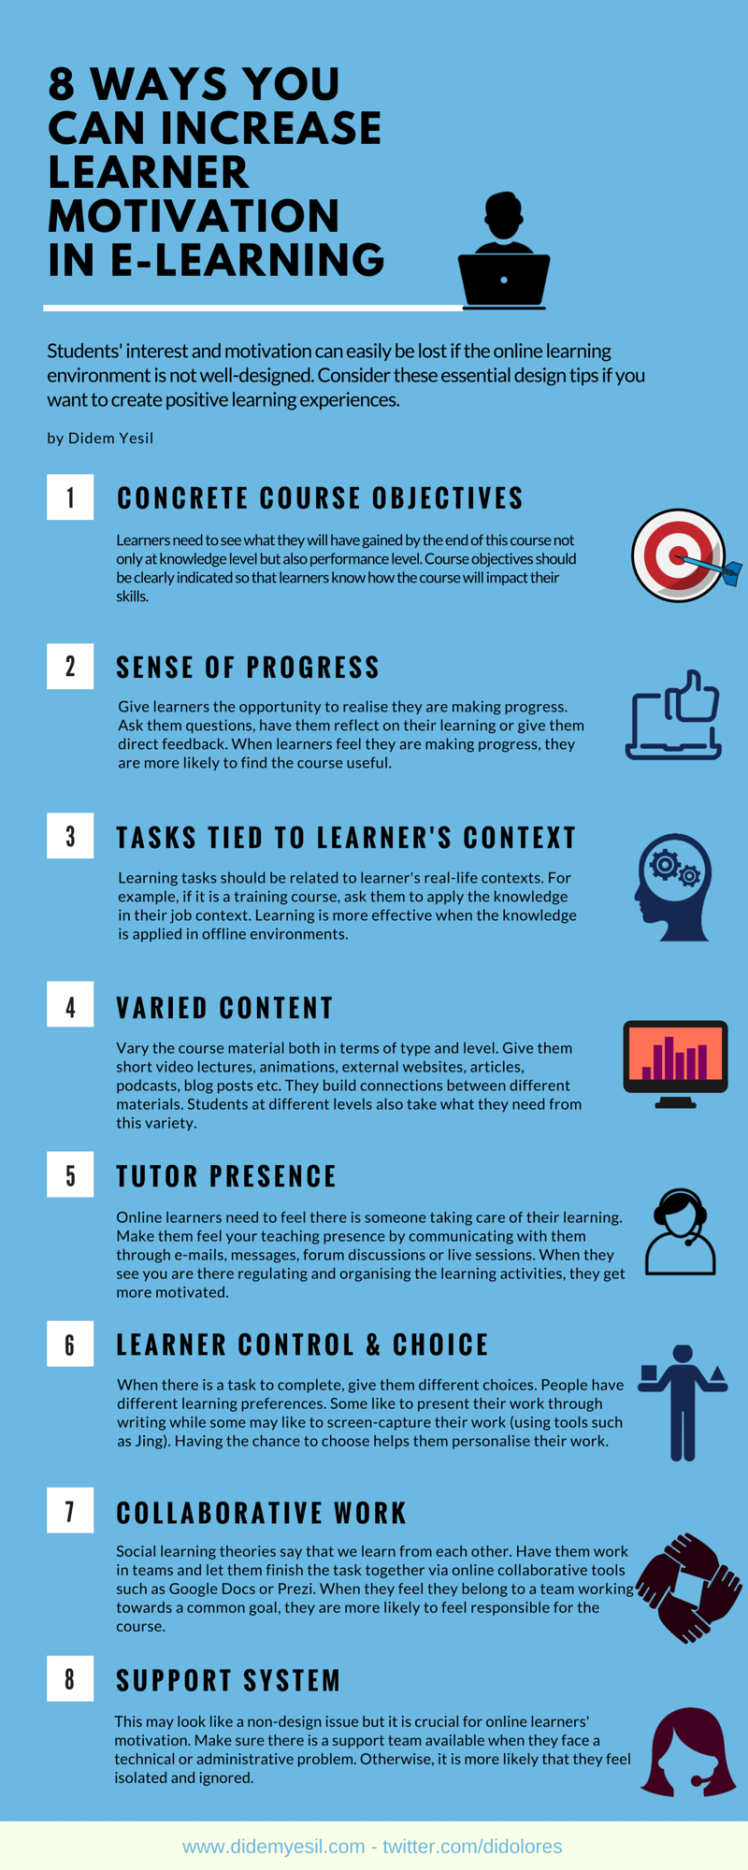 7 WAYS YOU CAN INCREASE LEARNER MOTIVATION IN E-LEARNING (3).png